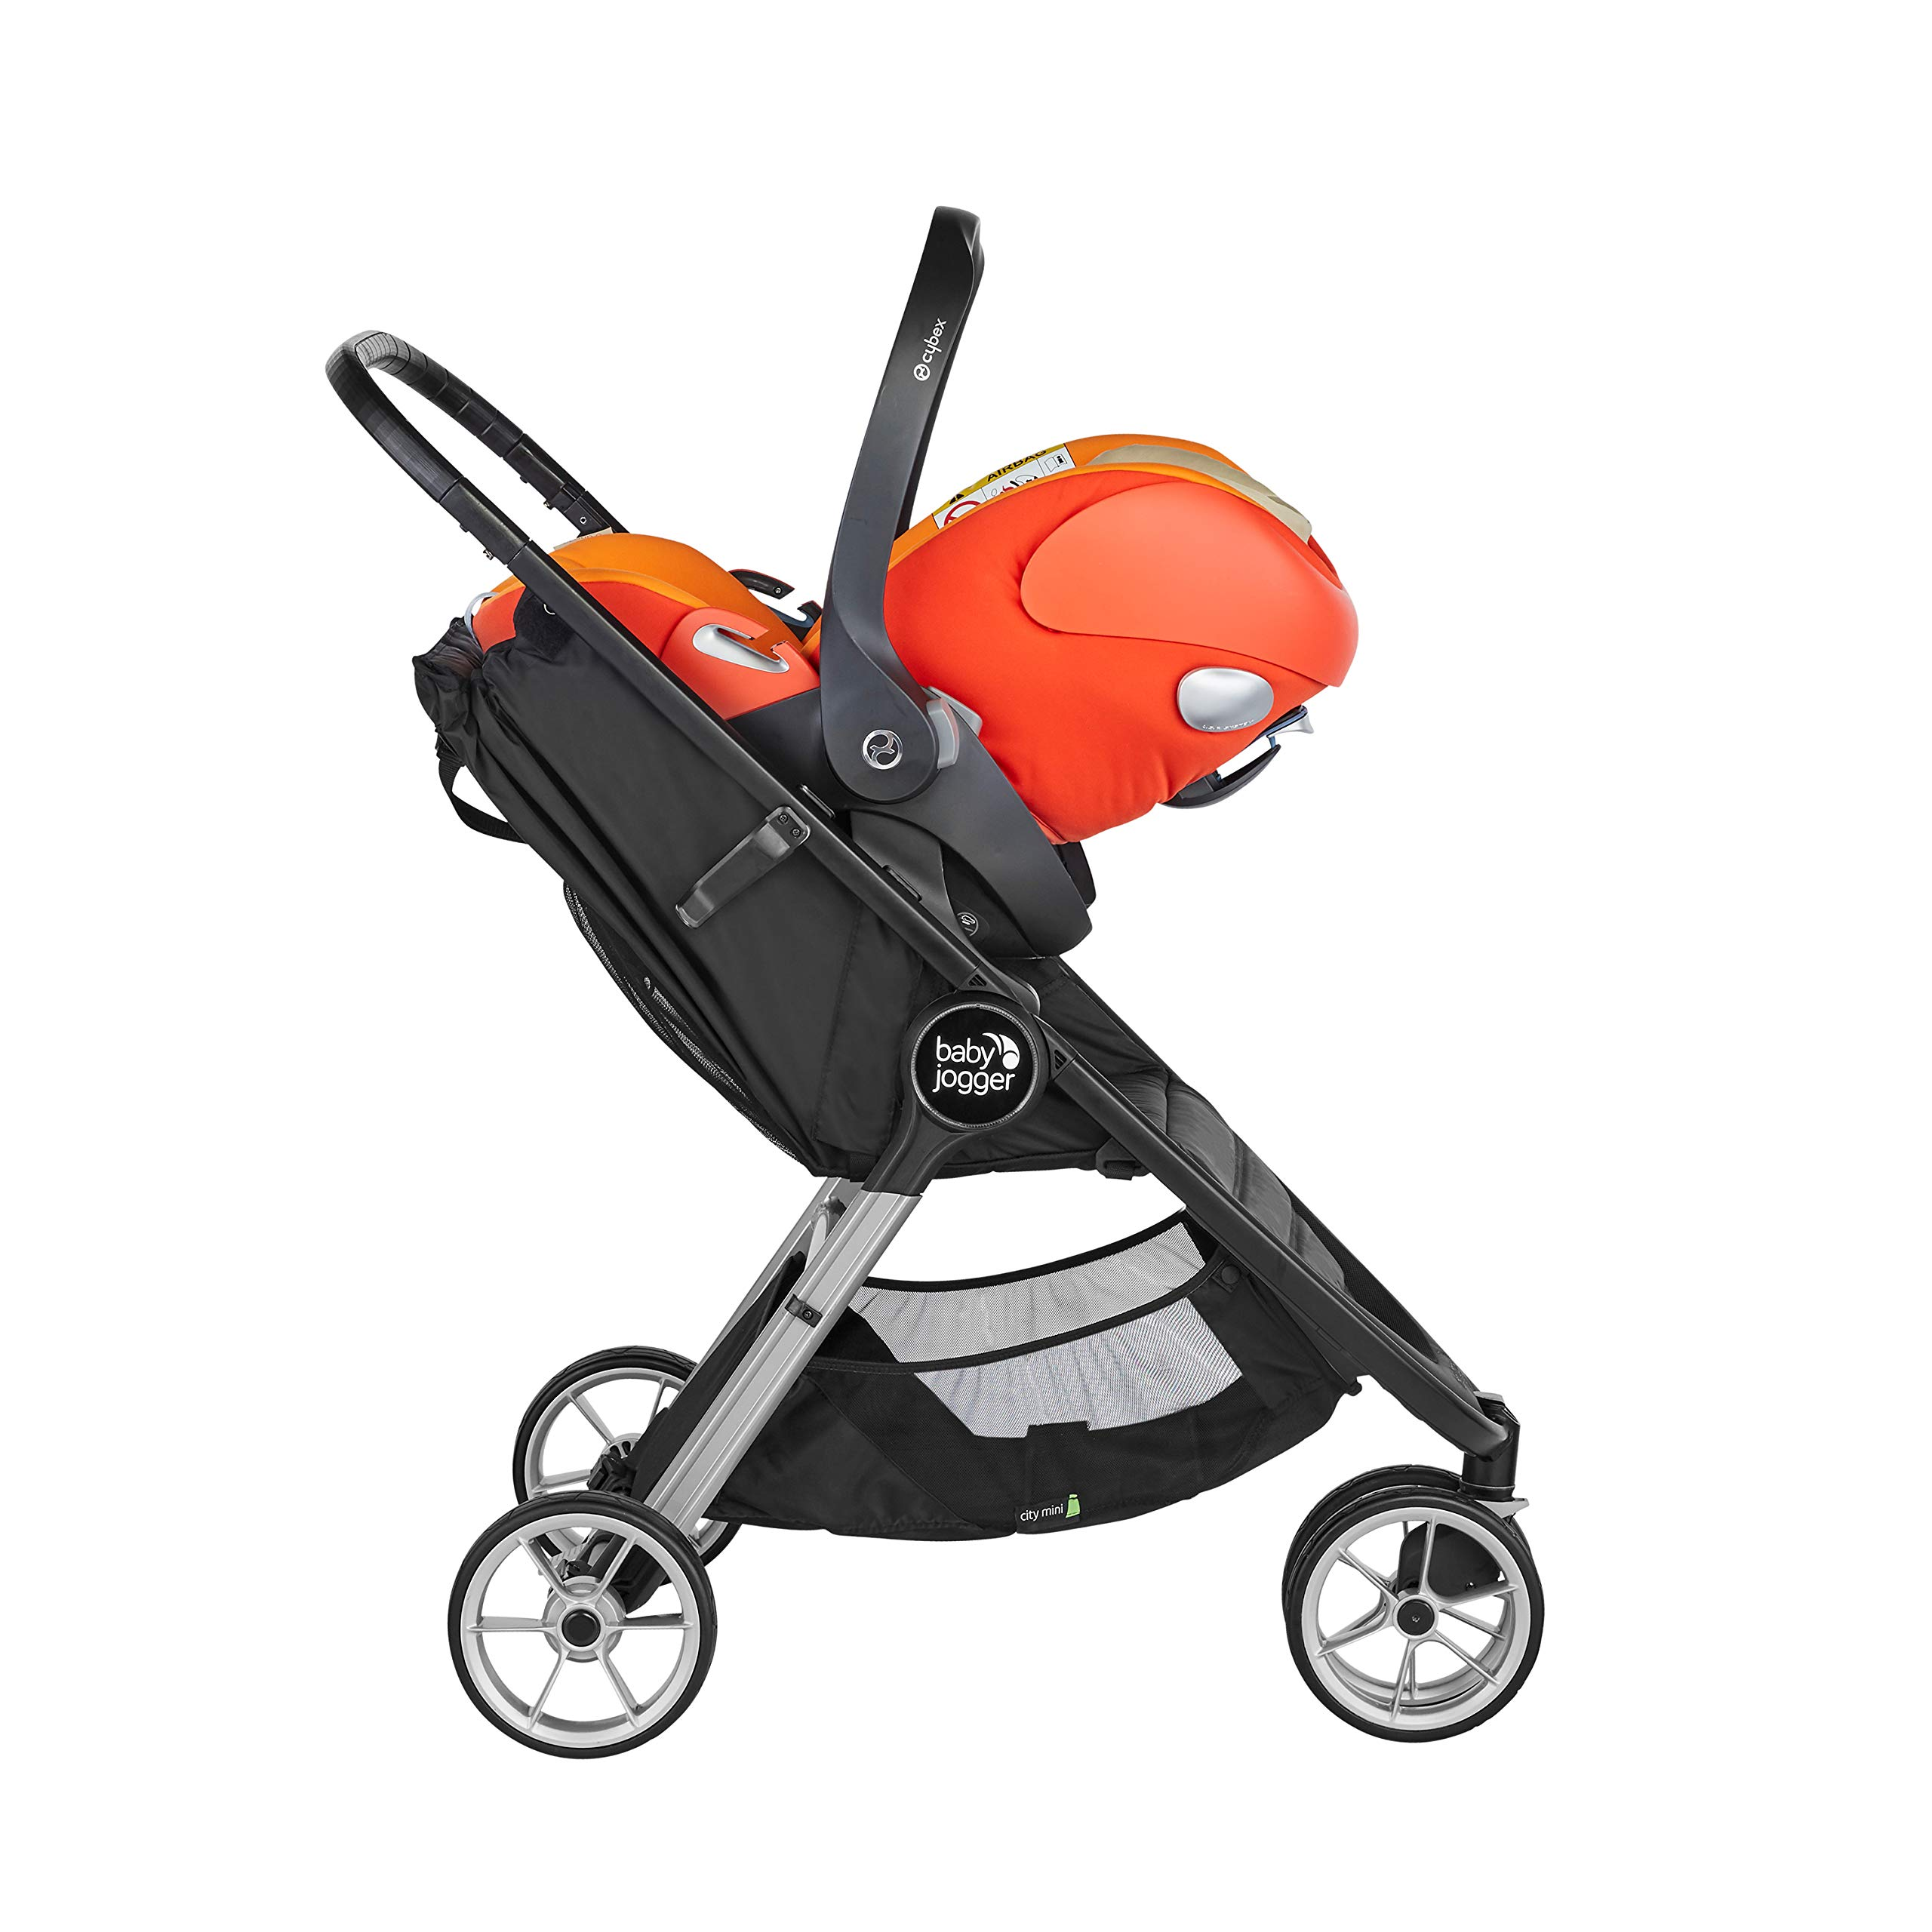 Baby Jogger Cybex/Clek Car Seat Adapter, City Mini GT2 by Baby Jogger (Image #2)